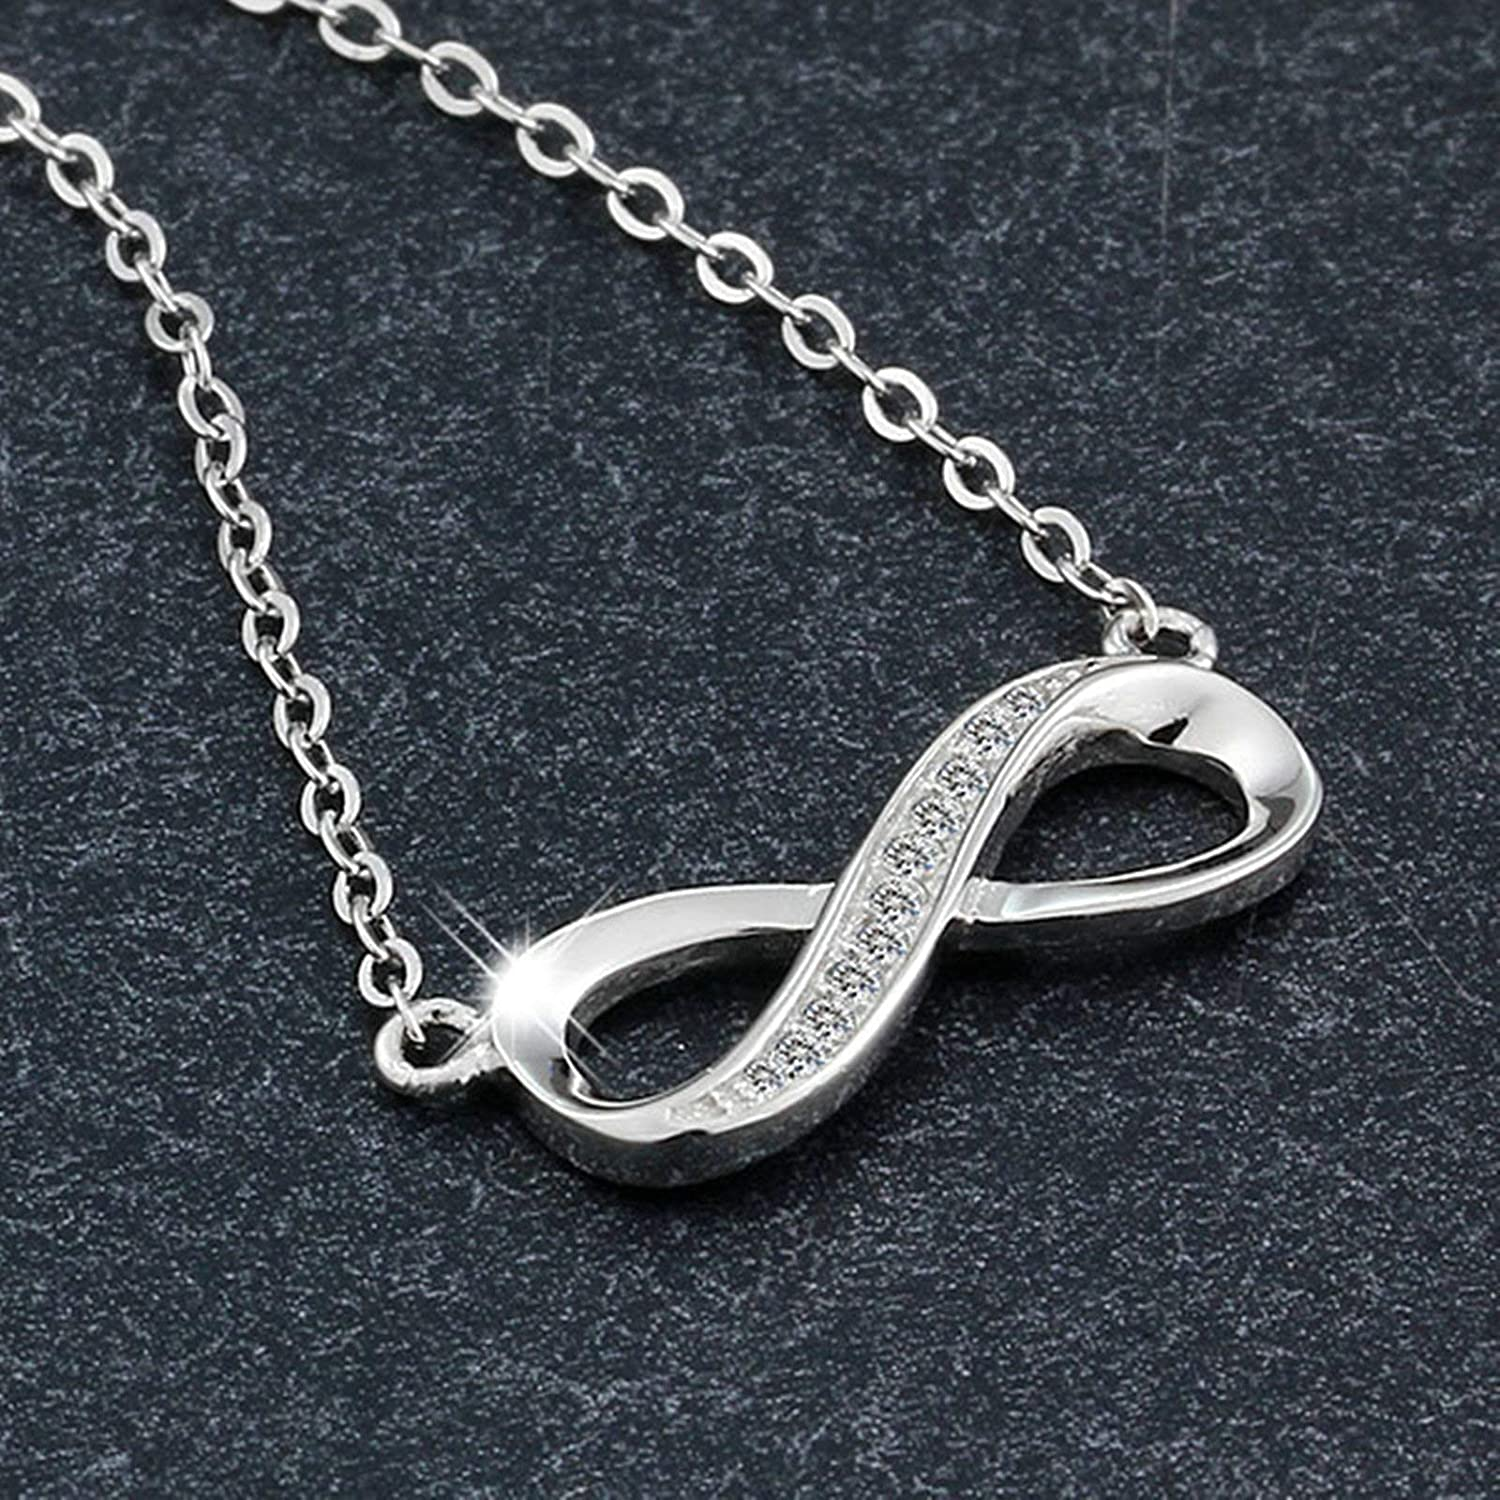 Aooaz Silver Plated Necklace Women White CZ Forever Endless Love Eight Sign Pendant Necklace Silver Wedding